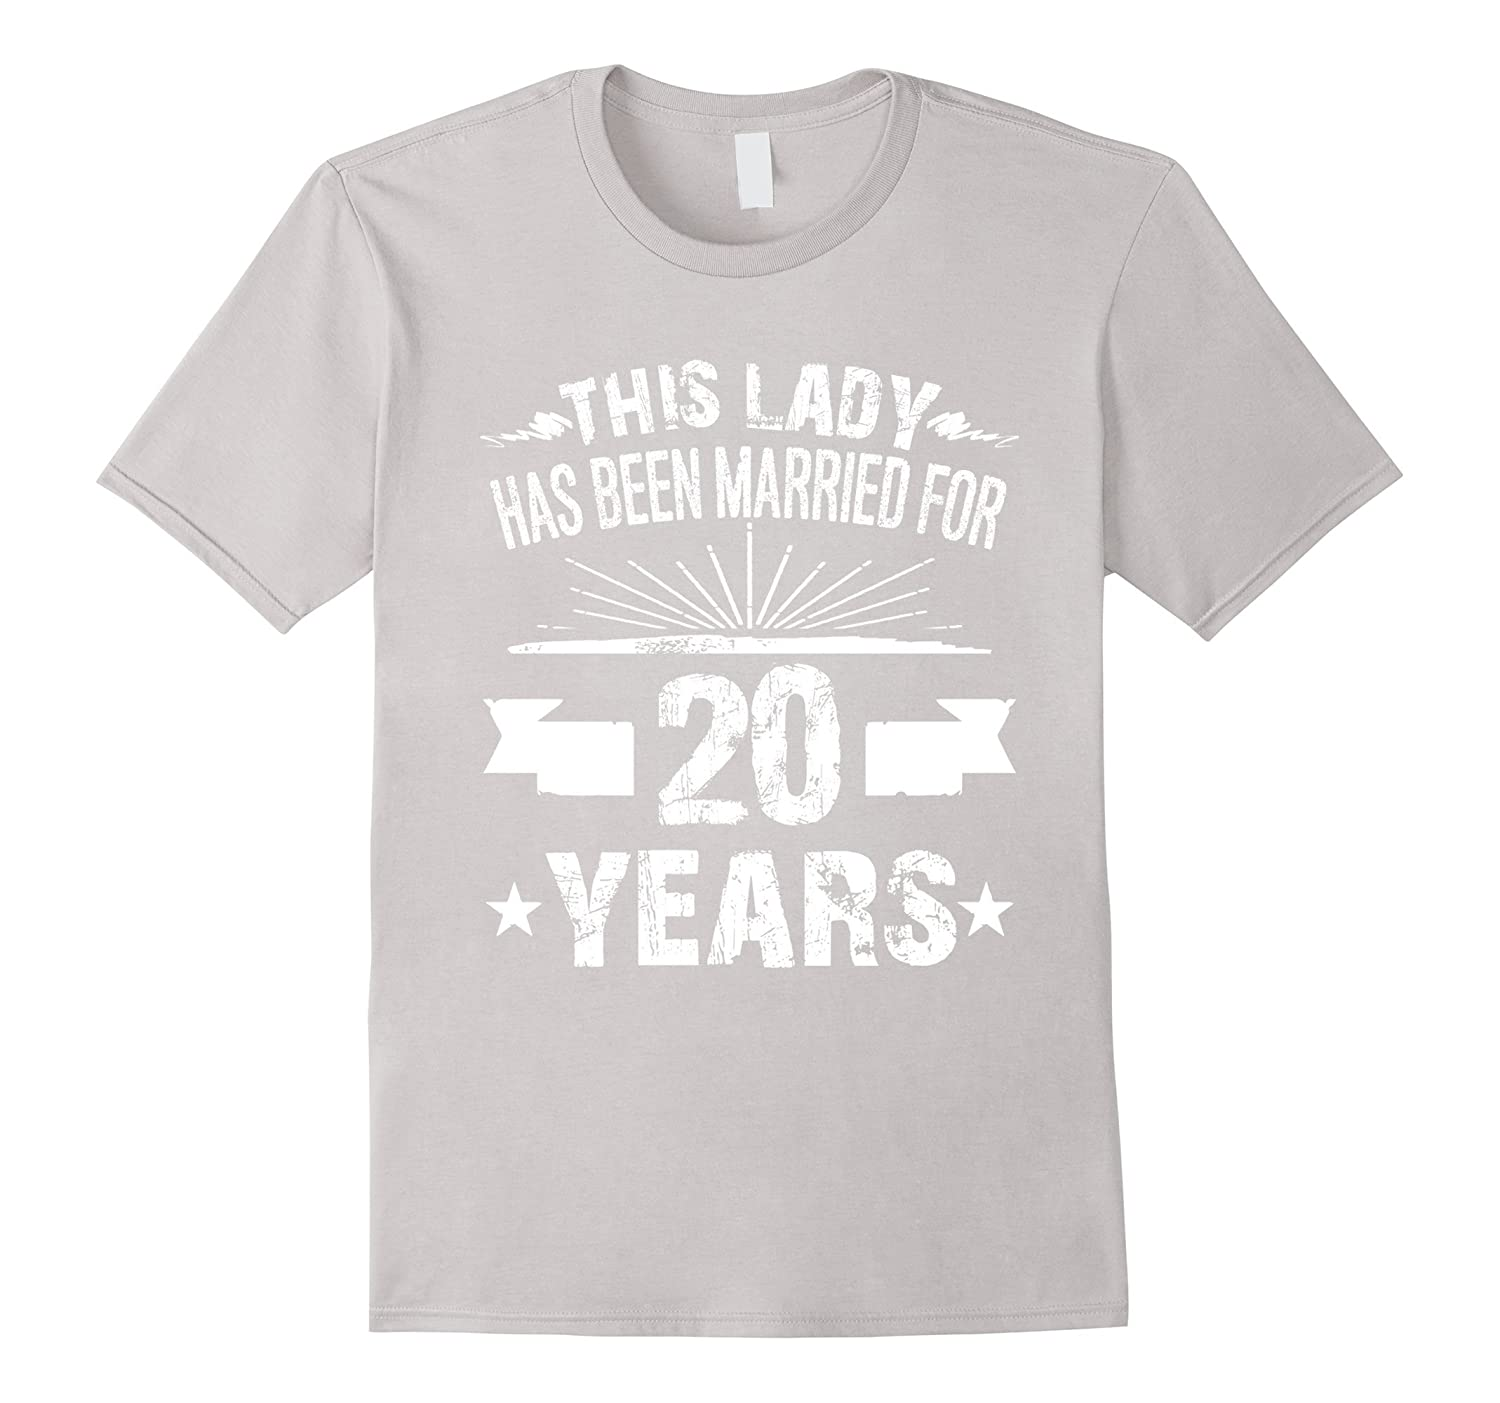 20th Wedding Anniversary Gifts 20 Year Shirt For Her-CL – Colamaga